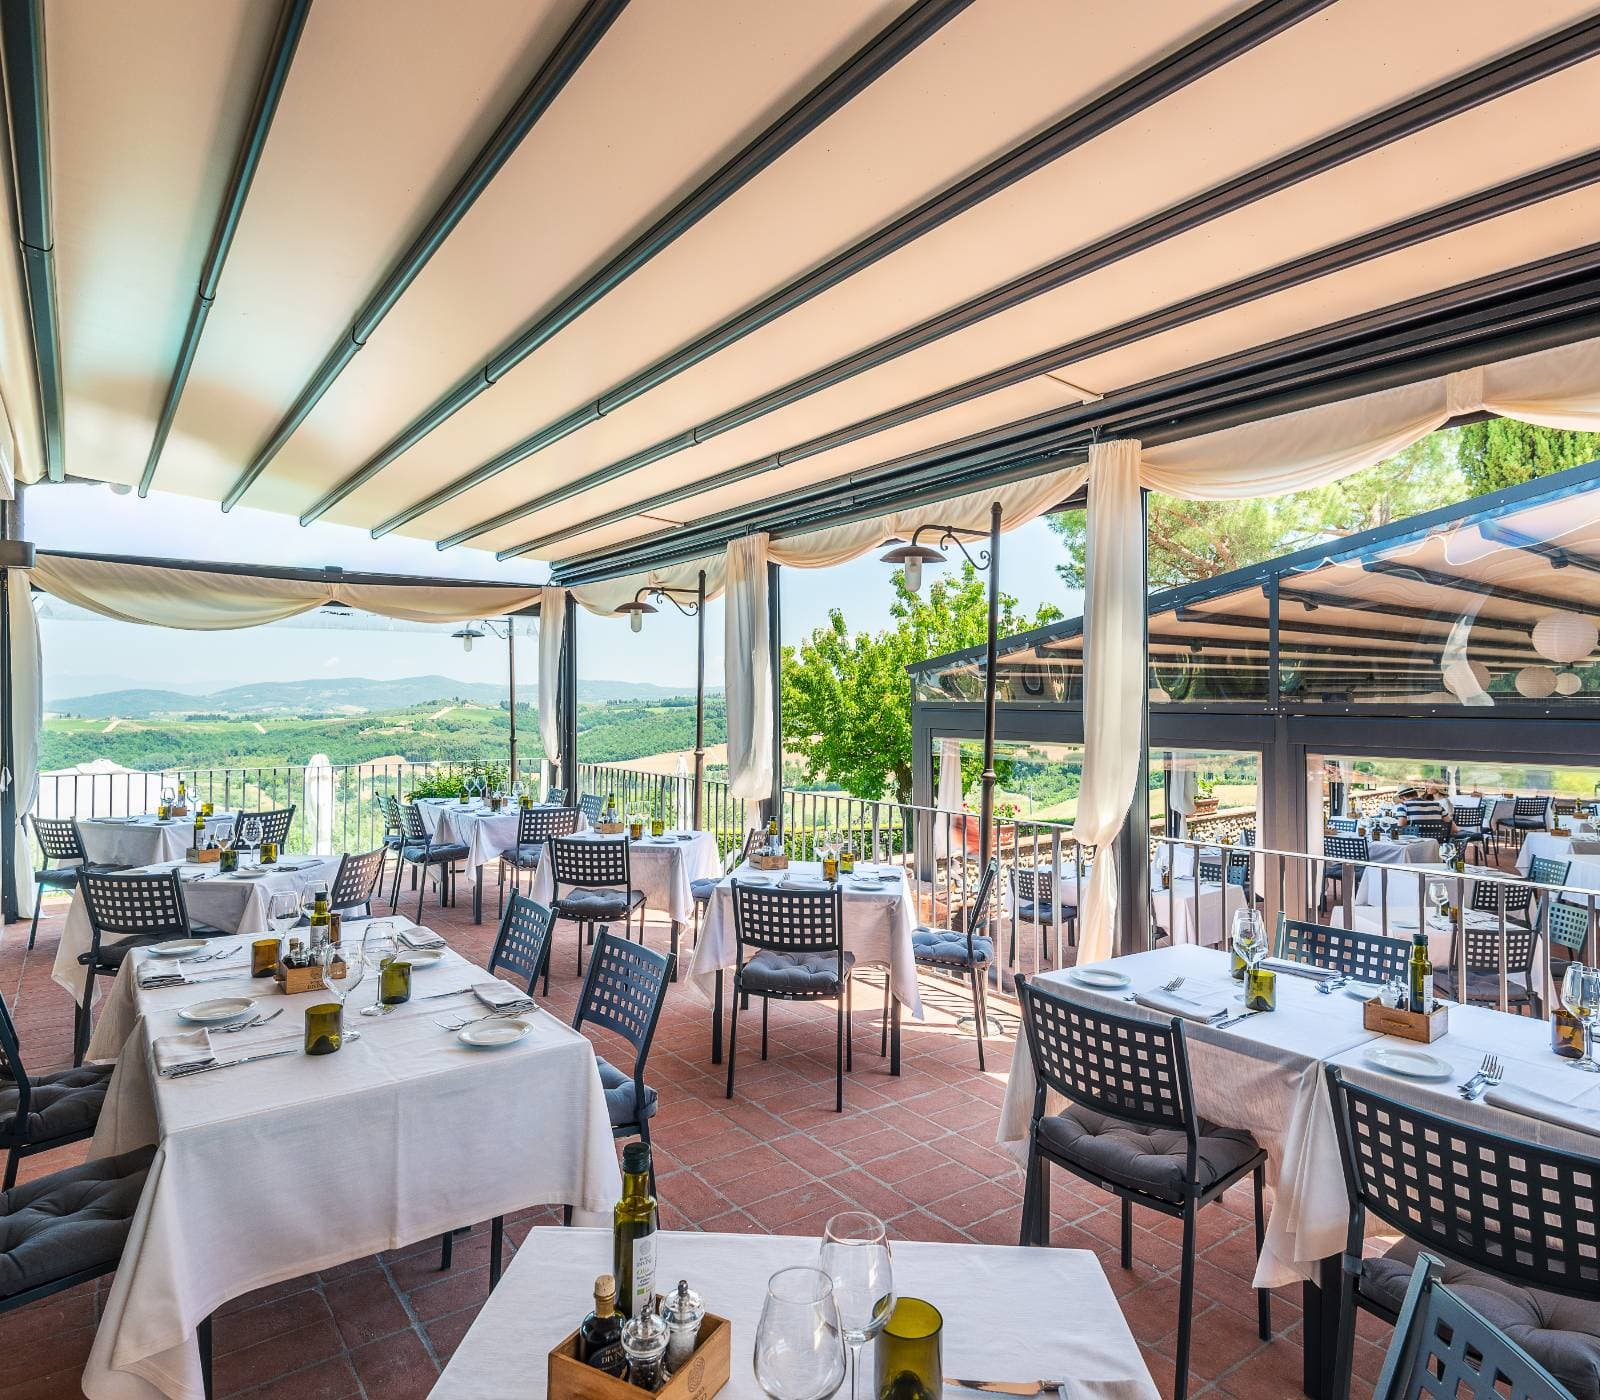 Book your table at Restaurant Borgo Divino in Montespertoli